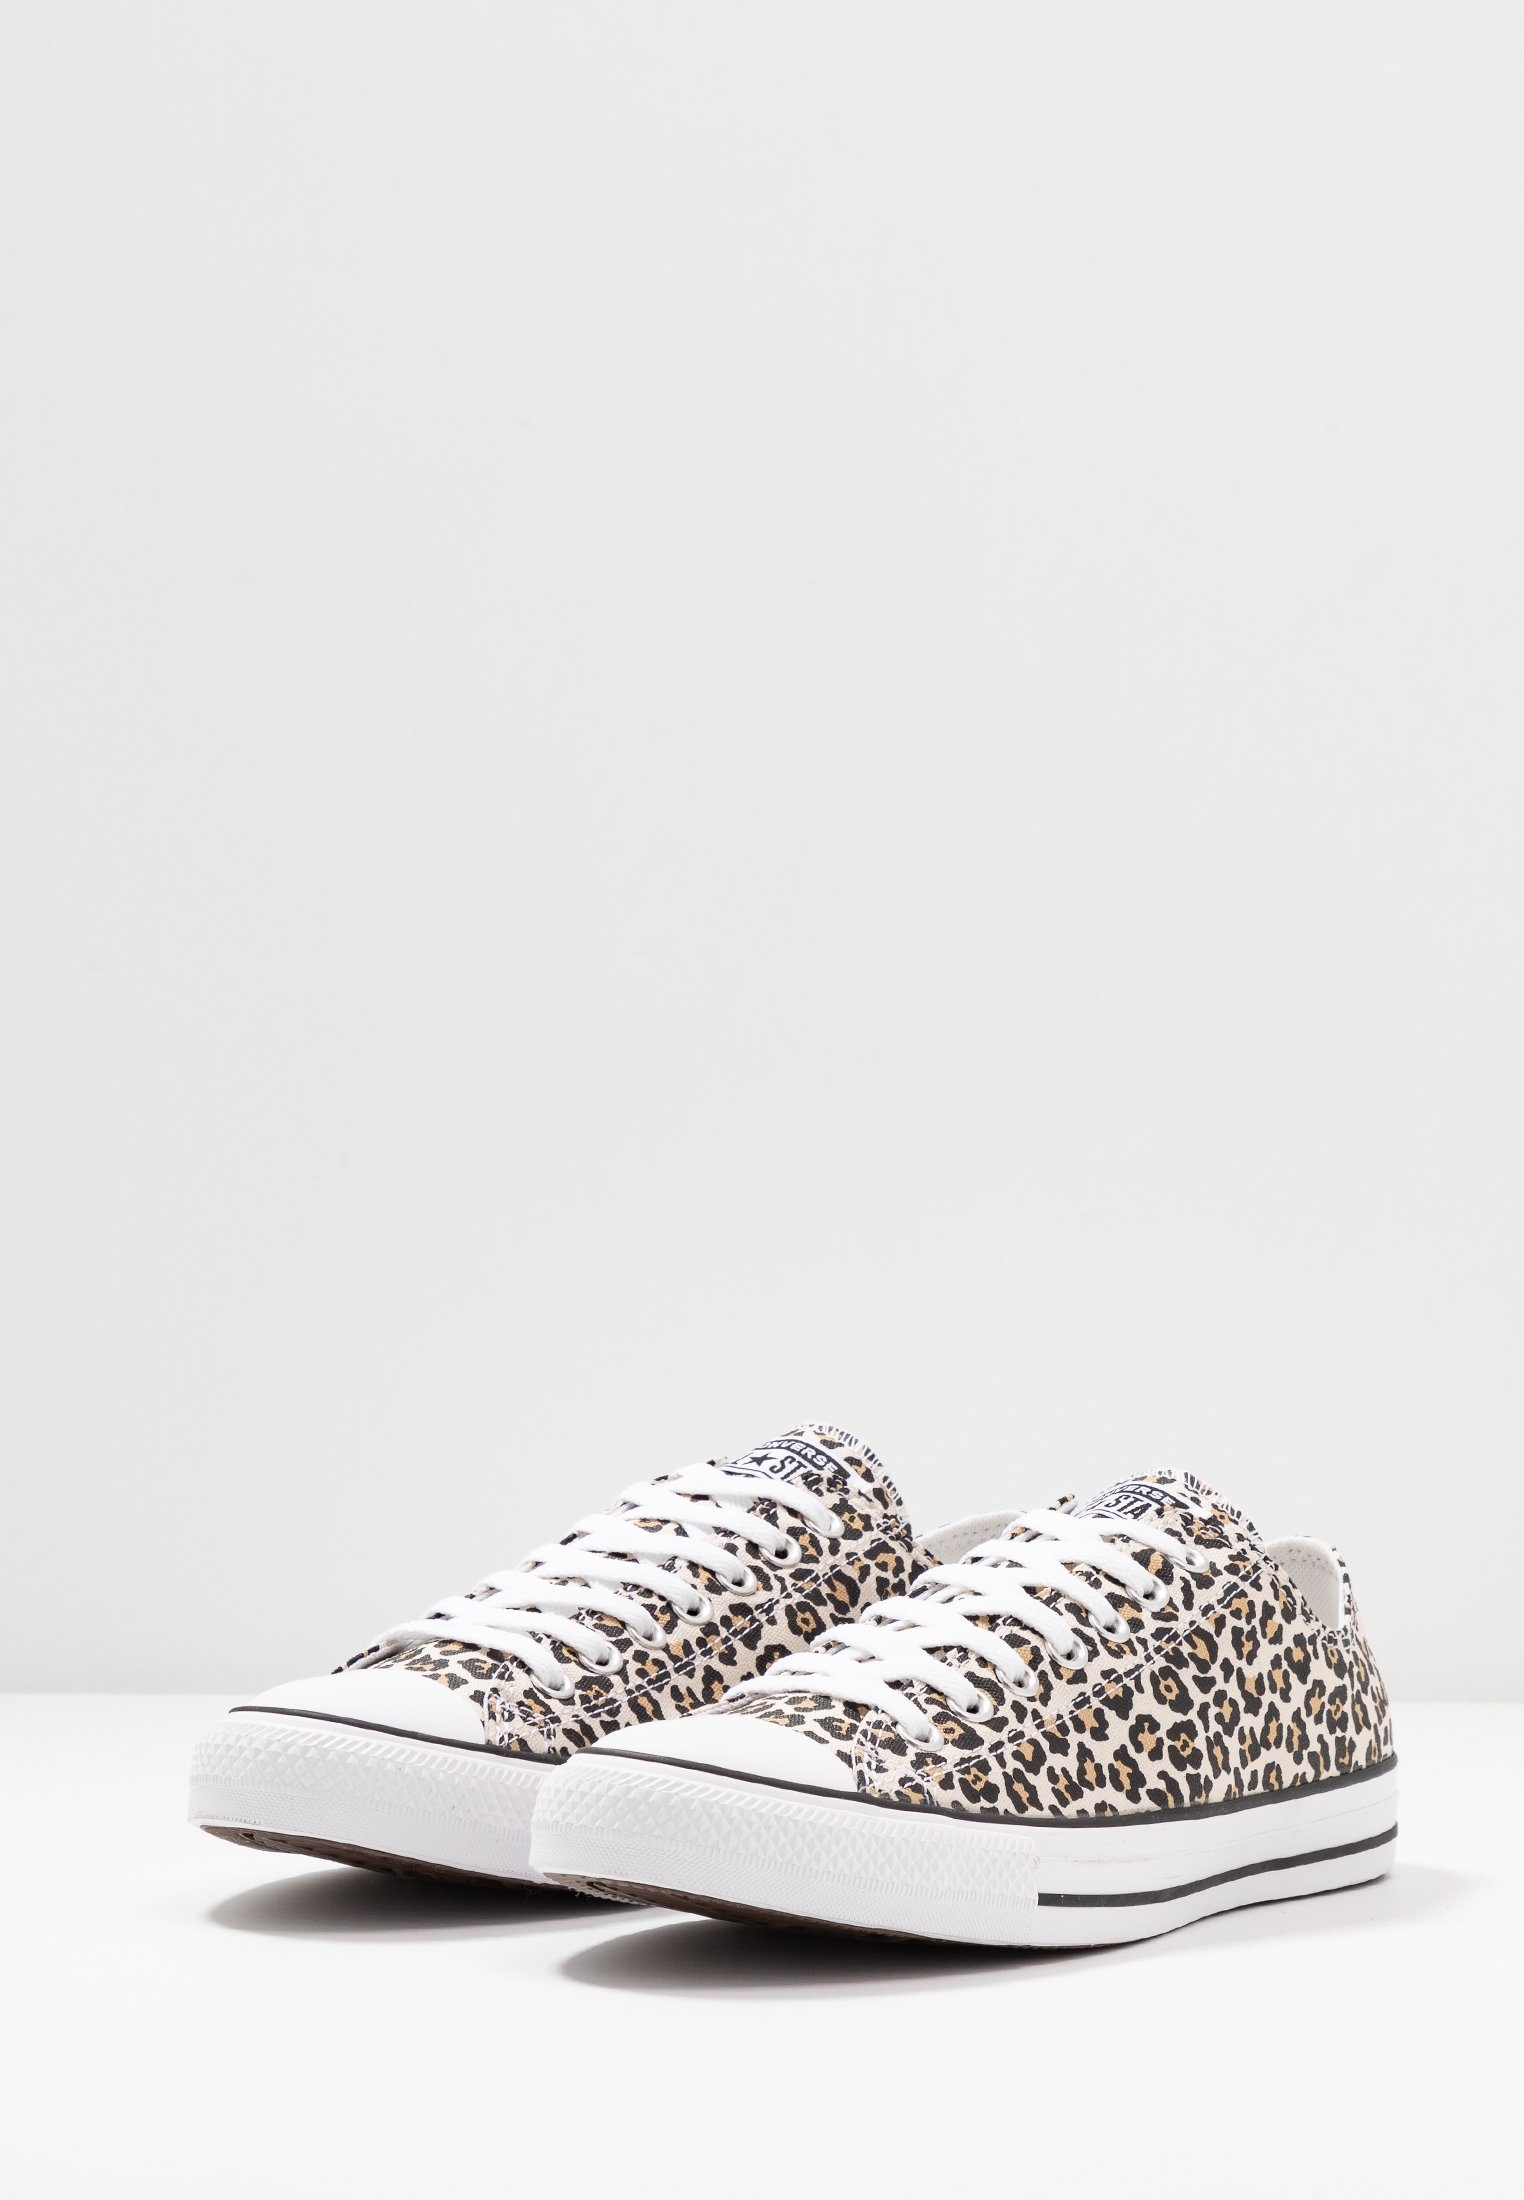 Converse CHUCK TAYLOR ALL STAR - Sneakers - offwhite